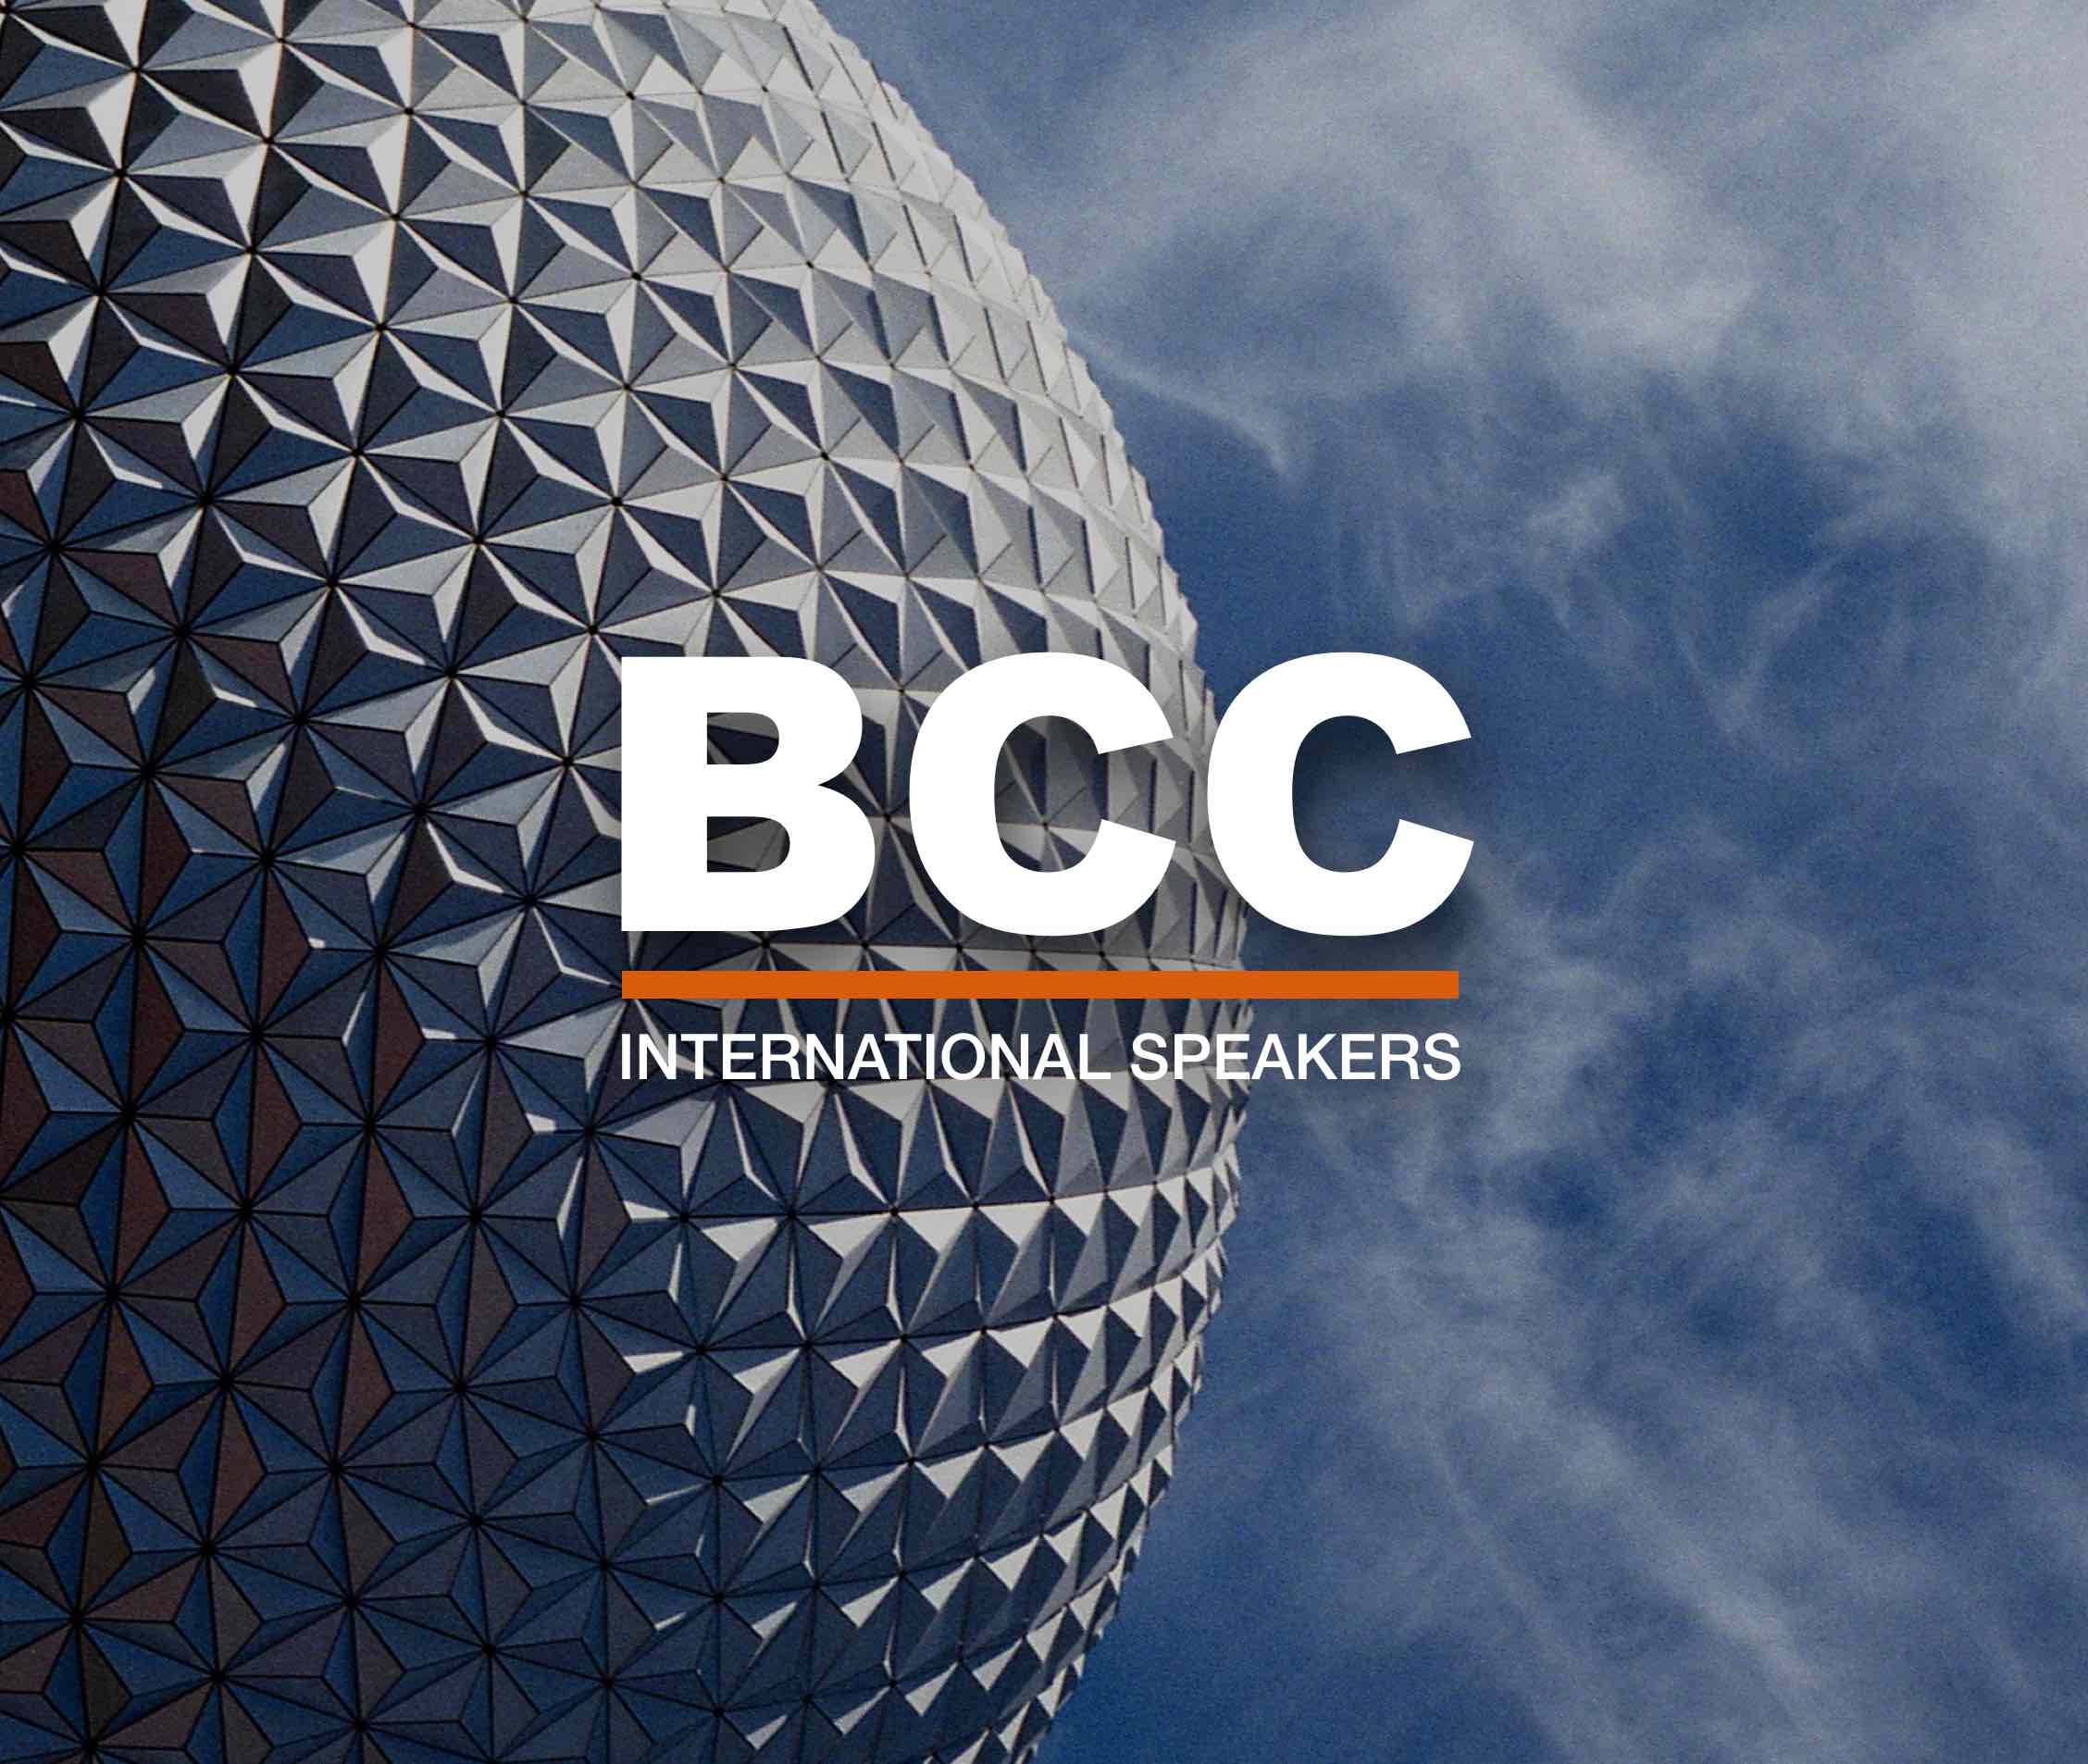 BCC INTERNATIONAL SPEAKERS - I love to make things happen. I find a way - especially when everyone says that something can't be done. In a little over a year I've started 4 businesses, written a #1 bestselling book and launched a series of courses. Not surprisingly this story is what ignites my passion and I love to speak about what I've learned. It's meant I get to turn my passions into inspiration for others and explain why and how I turn all the disruption around us into advantage.And now a new chapter. This last 18 months has been a whirlwind of travelling, learning and even more speaking. So, to add yet more energy to the mix I'm excited to announce that I'm going to be represented exclusively (and globally) by BCC speakers;For enquiries please contact Enrique Vessuri evessuri@grupobcc.com BCC Speakers